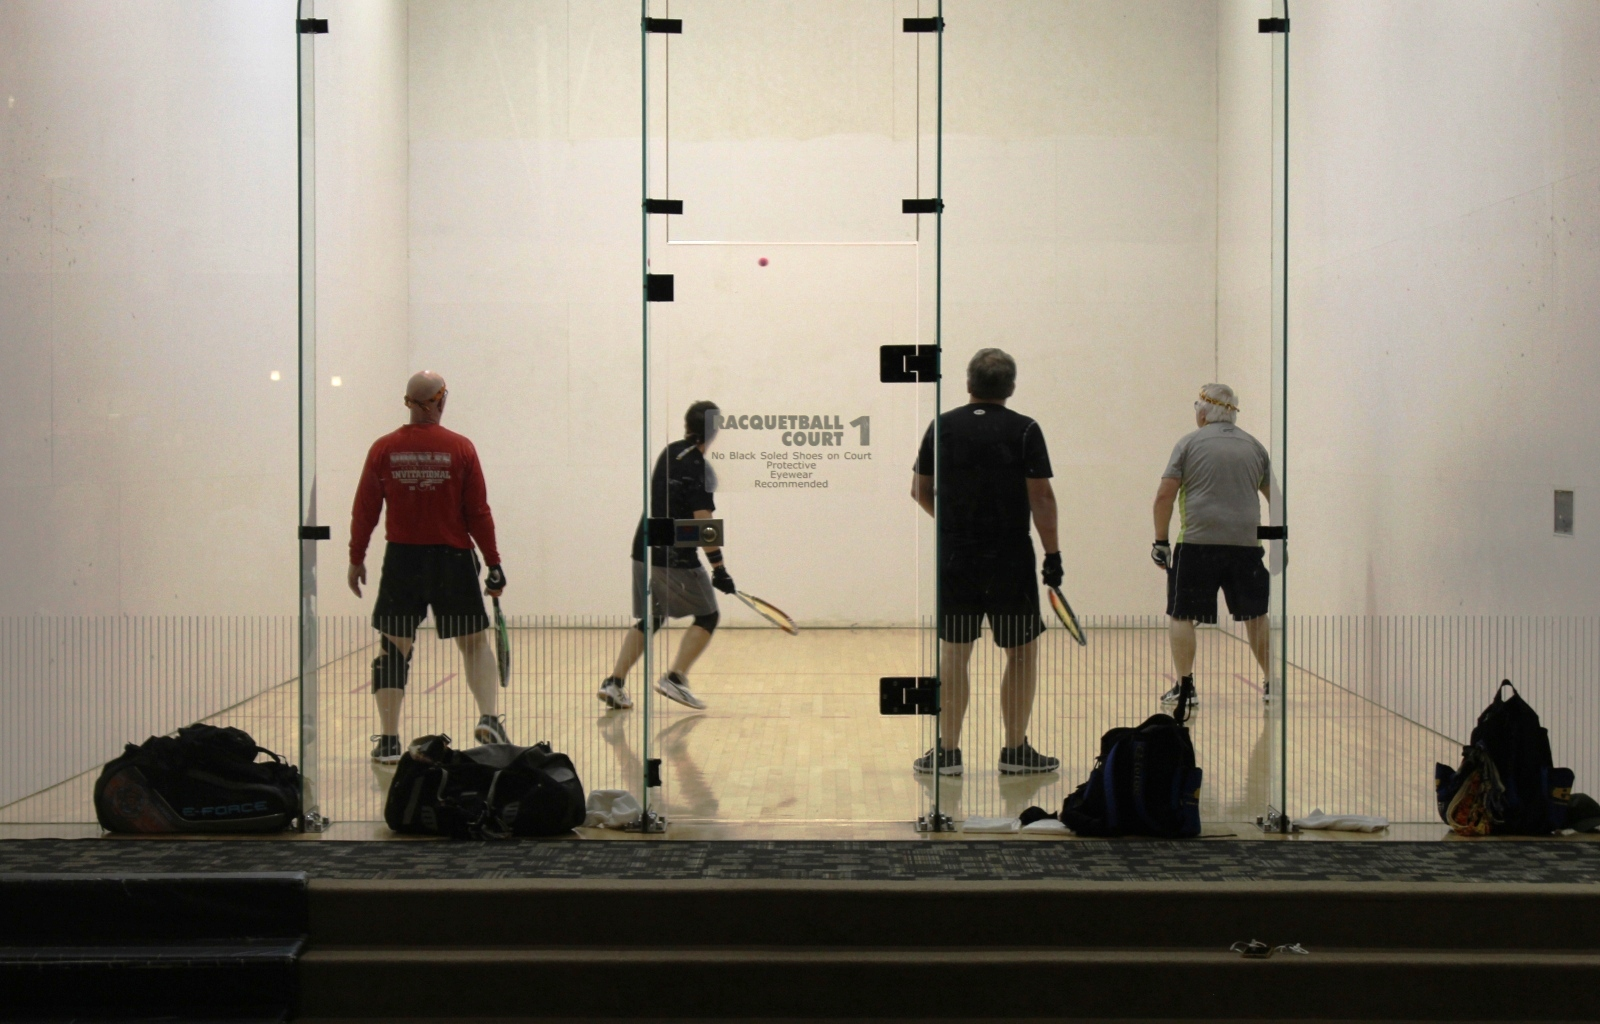 https://cdn2.hubspot.net/hubfs/2470171/blog/Racquetball%20Game.jpg Feature Image